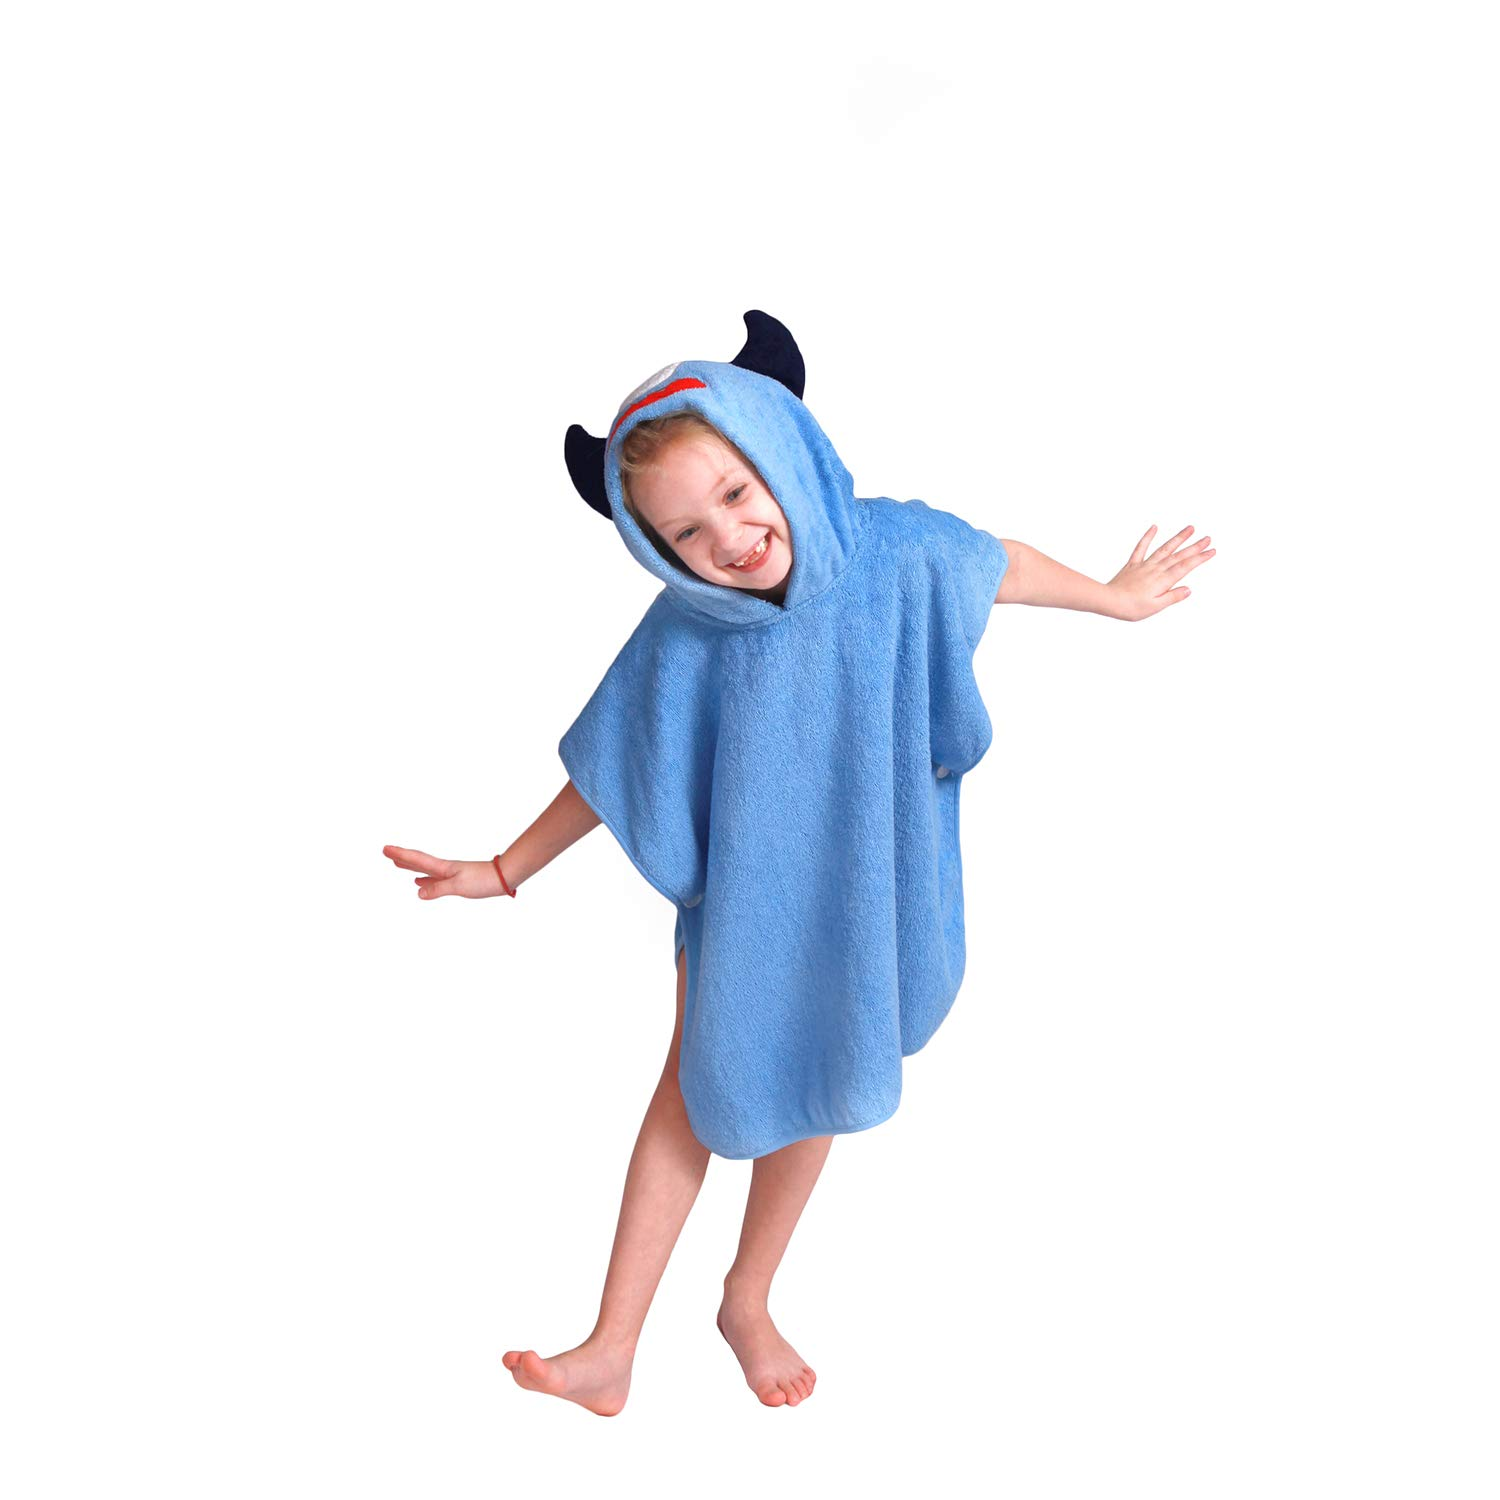 Hooded Bath Towel for Kids,Quick Drying Baby Cotton Shower Poncho Wraps for Bath,Beach,Swimming Pool Time,Best Gifts for Toddlers,24x47''